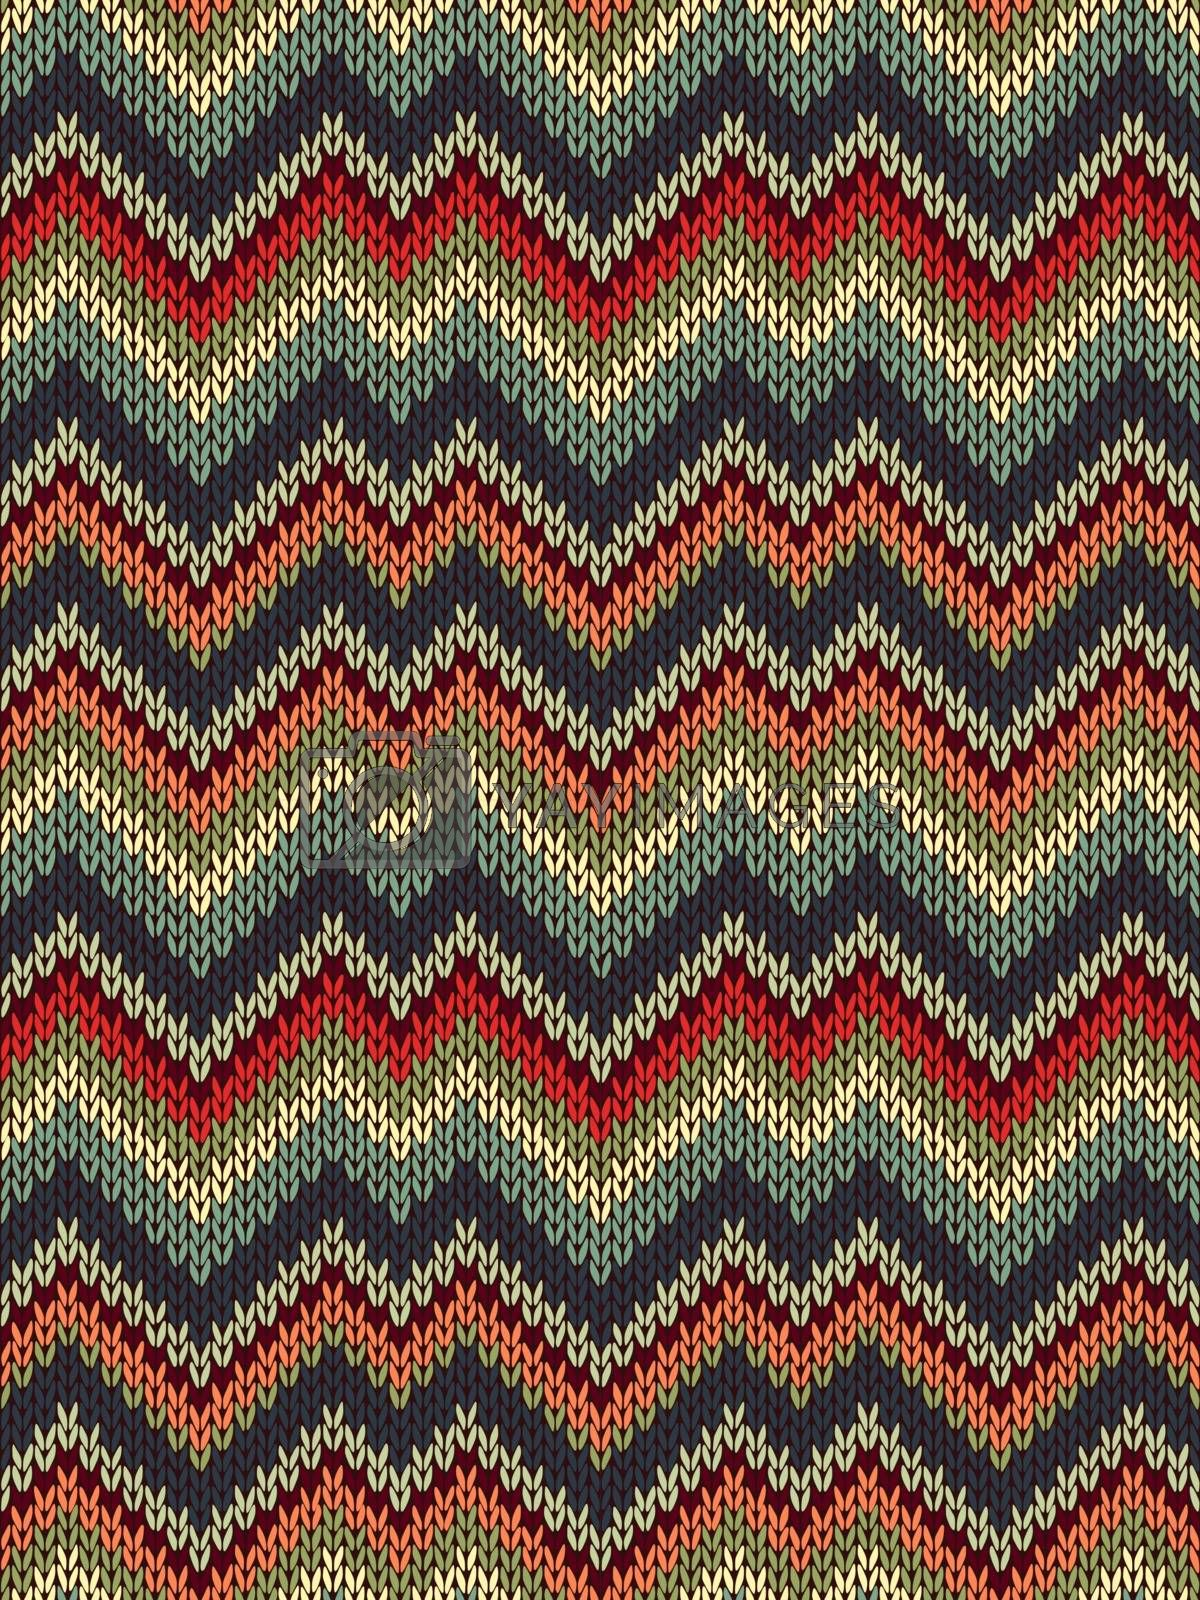 Multicolor seamless knit pattern. Zigzag embroidery texture by ESSL